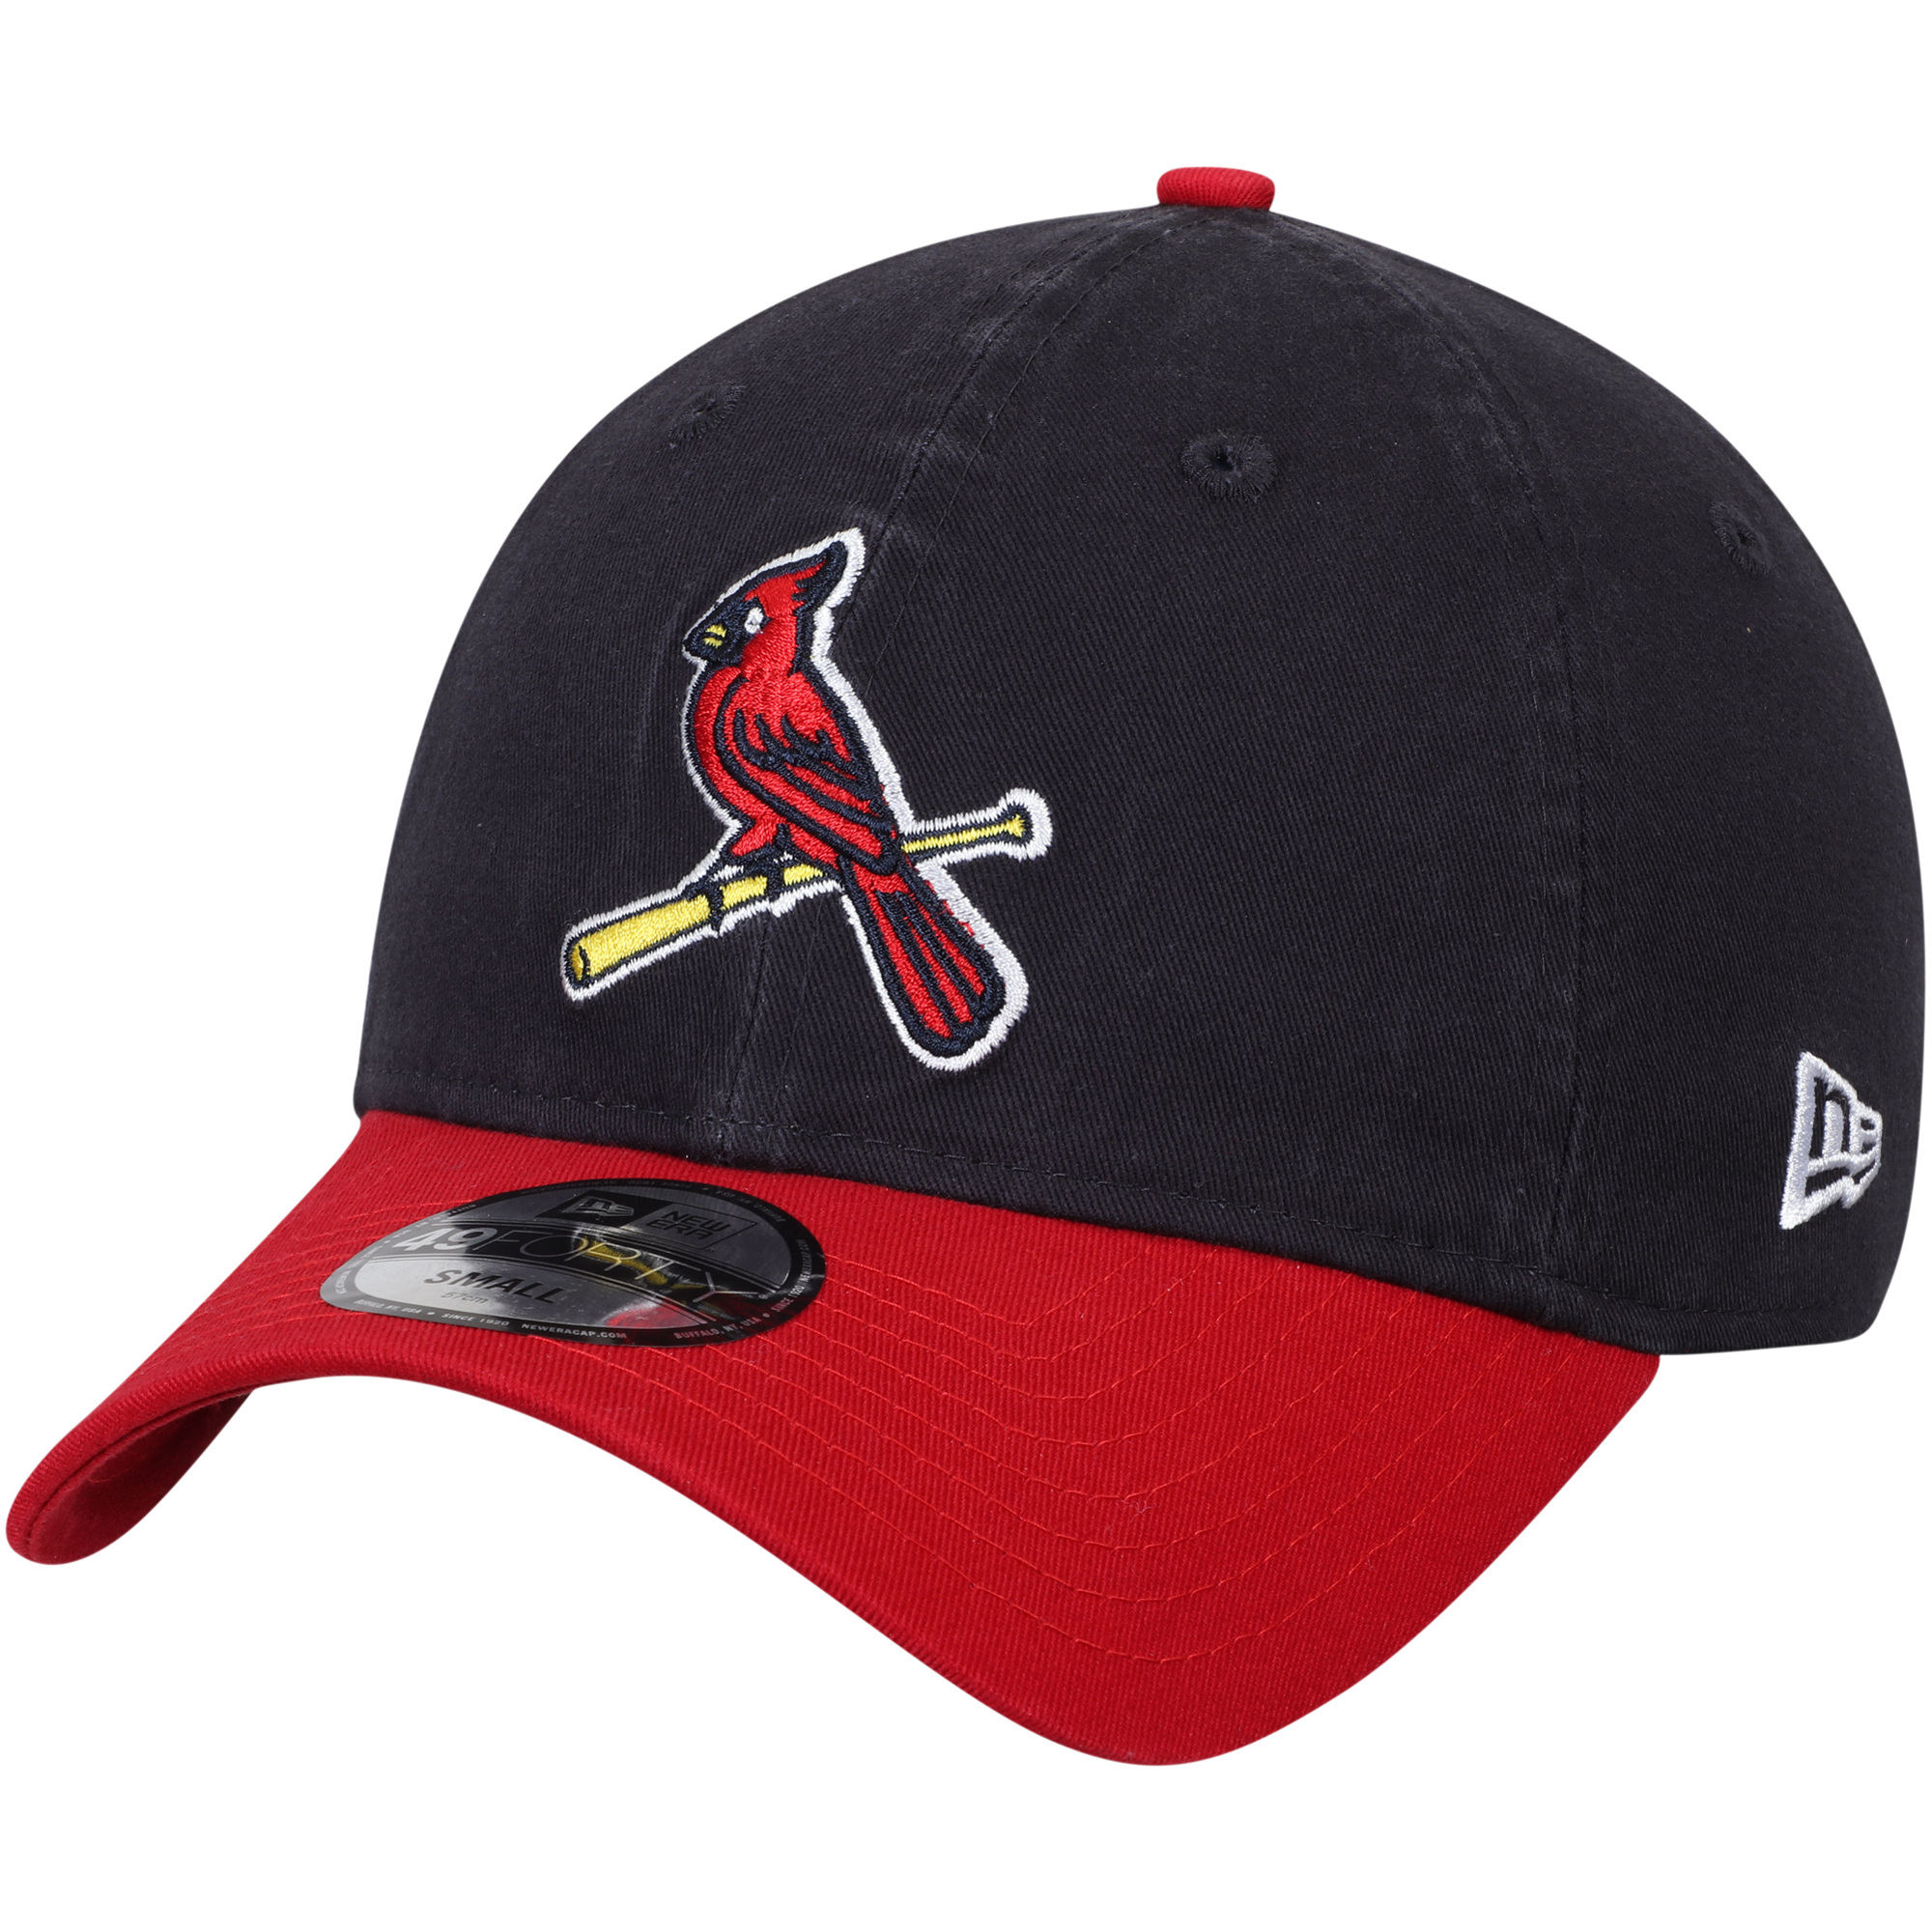 St. Louis Cardinals New Era Core Fit Replica 49FORTY Fitted Hat - Navy/Red